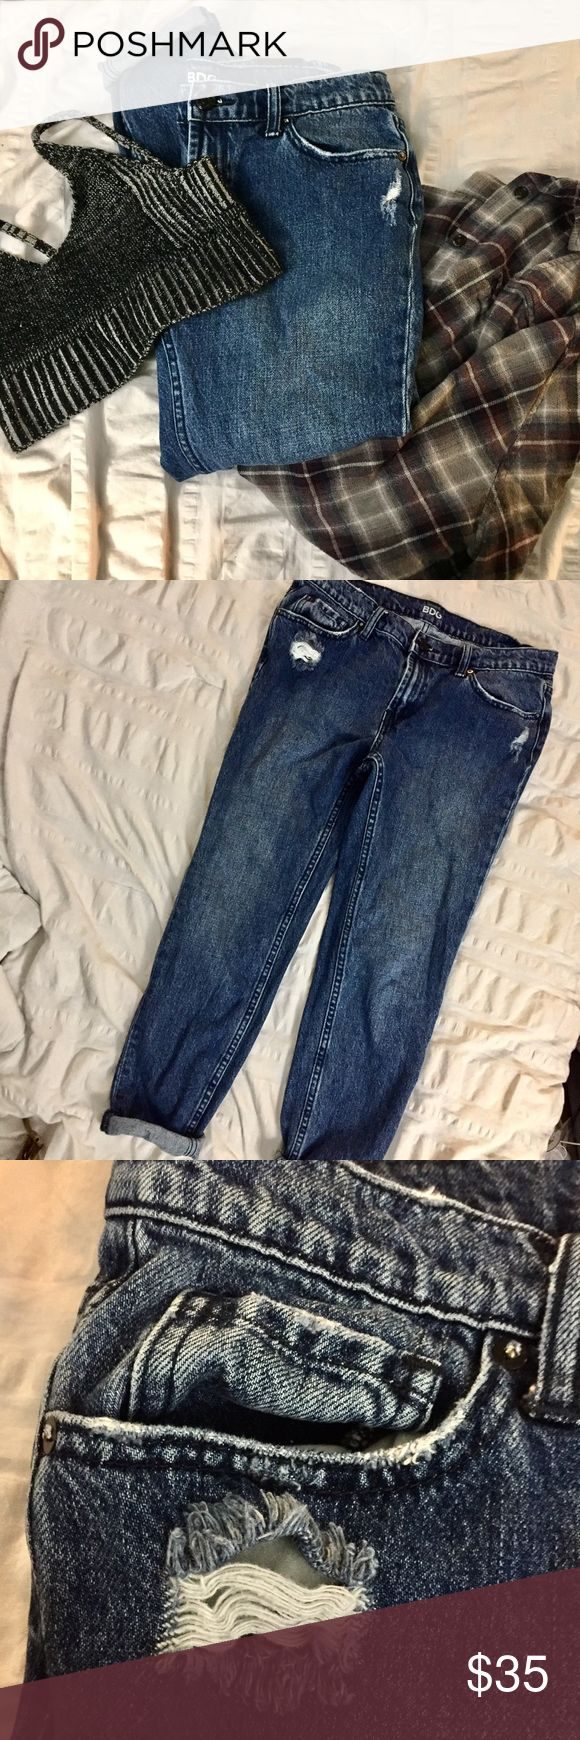 BDG slim boyfriend jeans in deep indigo BDG slim boyfriend jeans in deep indigo. Purchased at Urban Outfitters. 27 but the waist runs large, as to be expected from boyfriend jeans. Like new condition! Very cute for many looks from basic casual, to grunge, or even a boho feel. Feel free to make an offer! 💙✨ Urban Outfitters Jeans Boyfriend